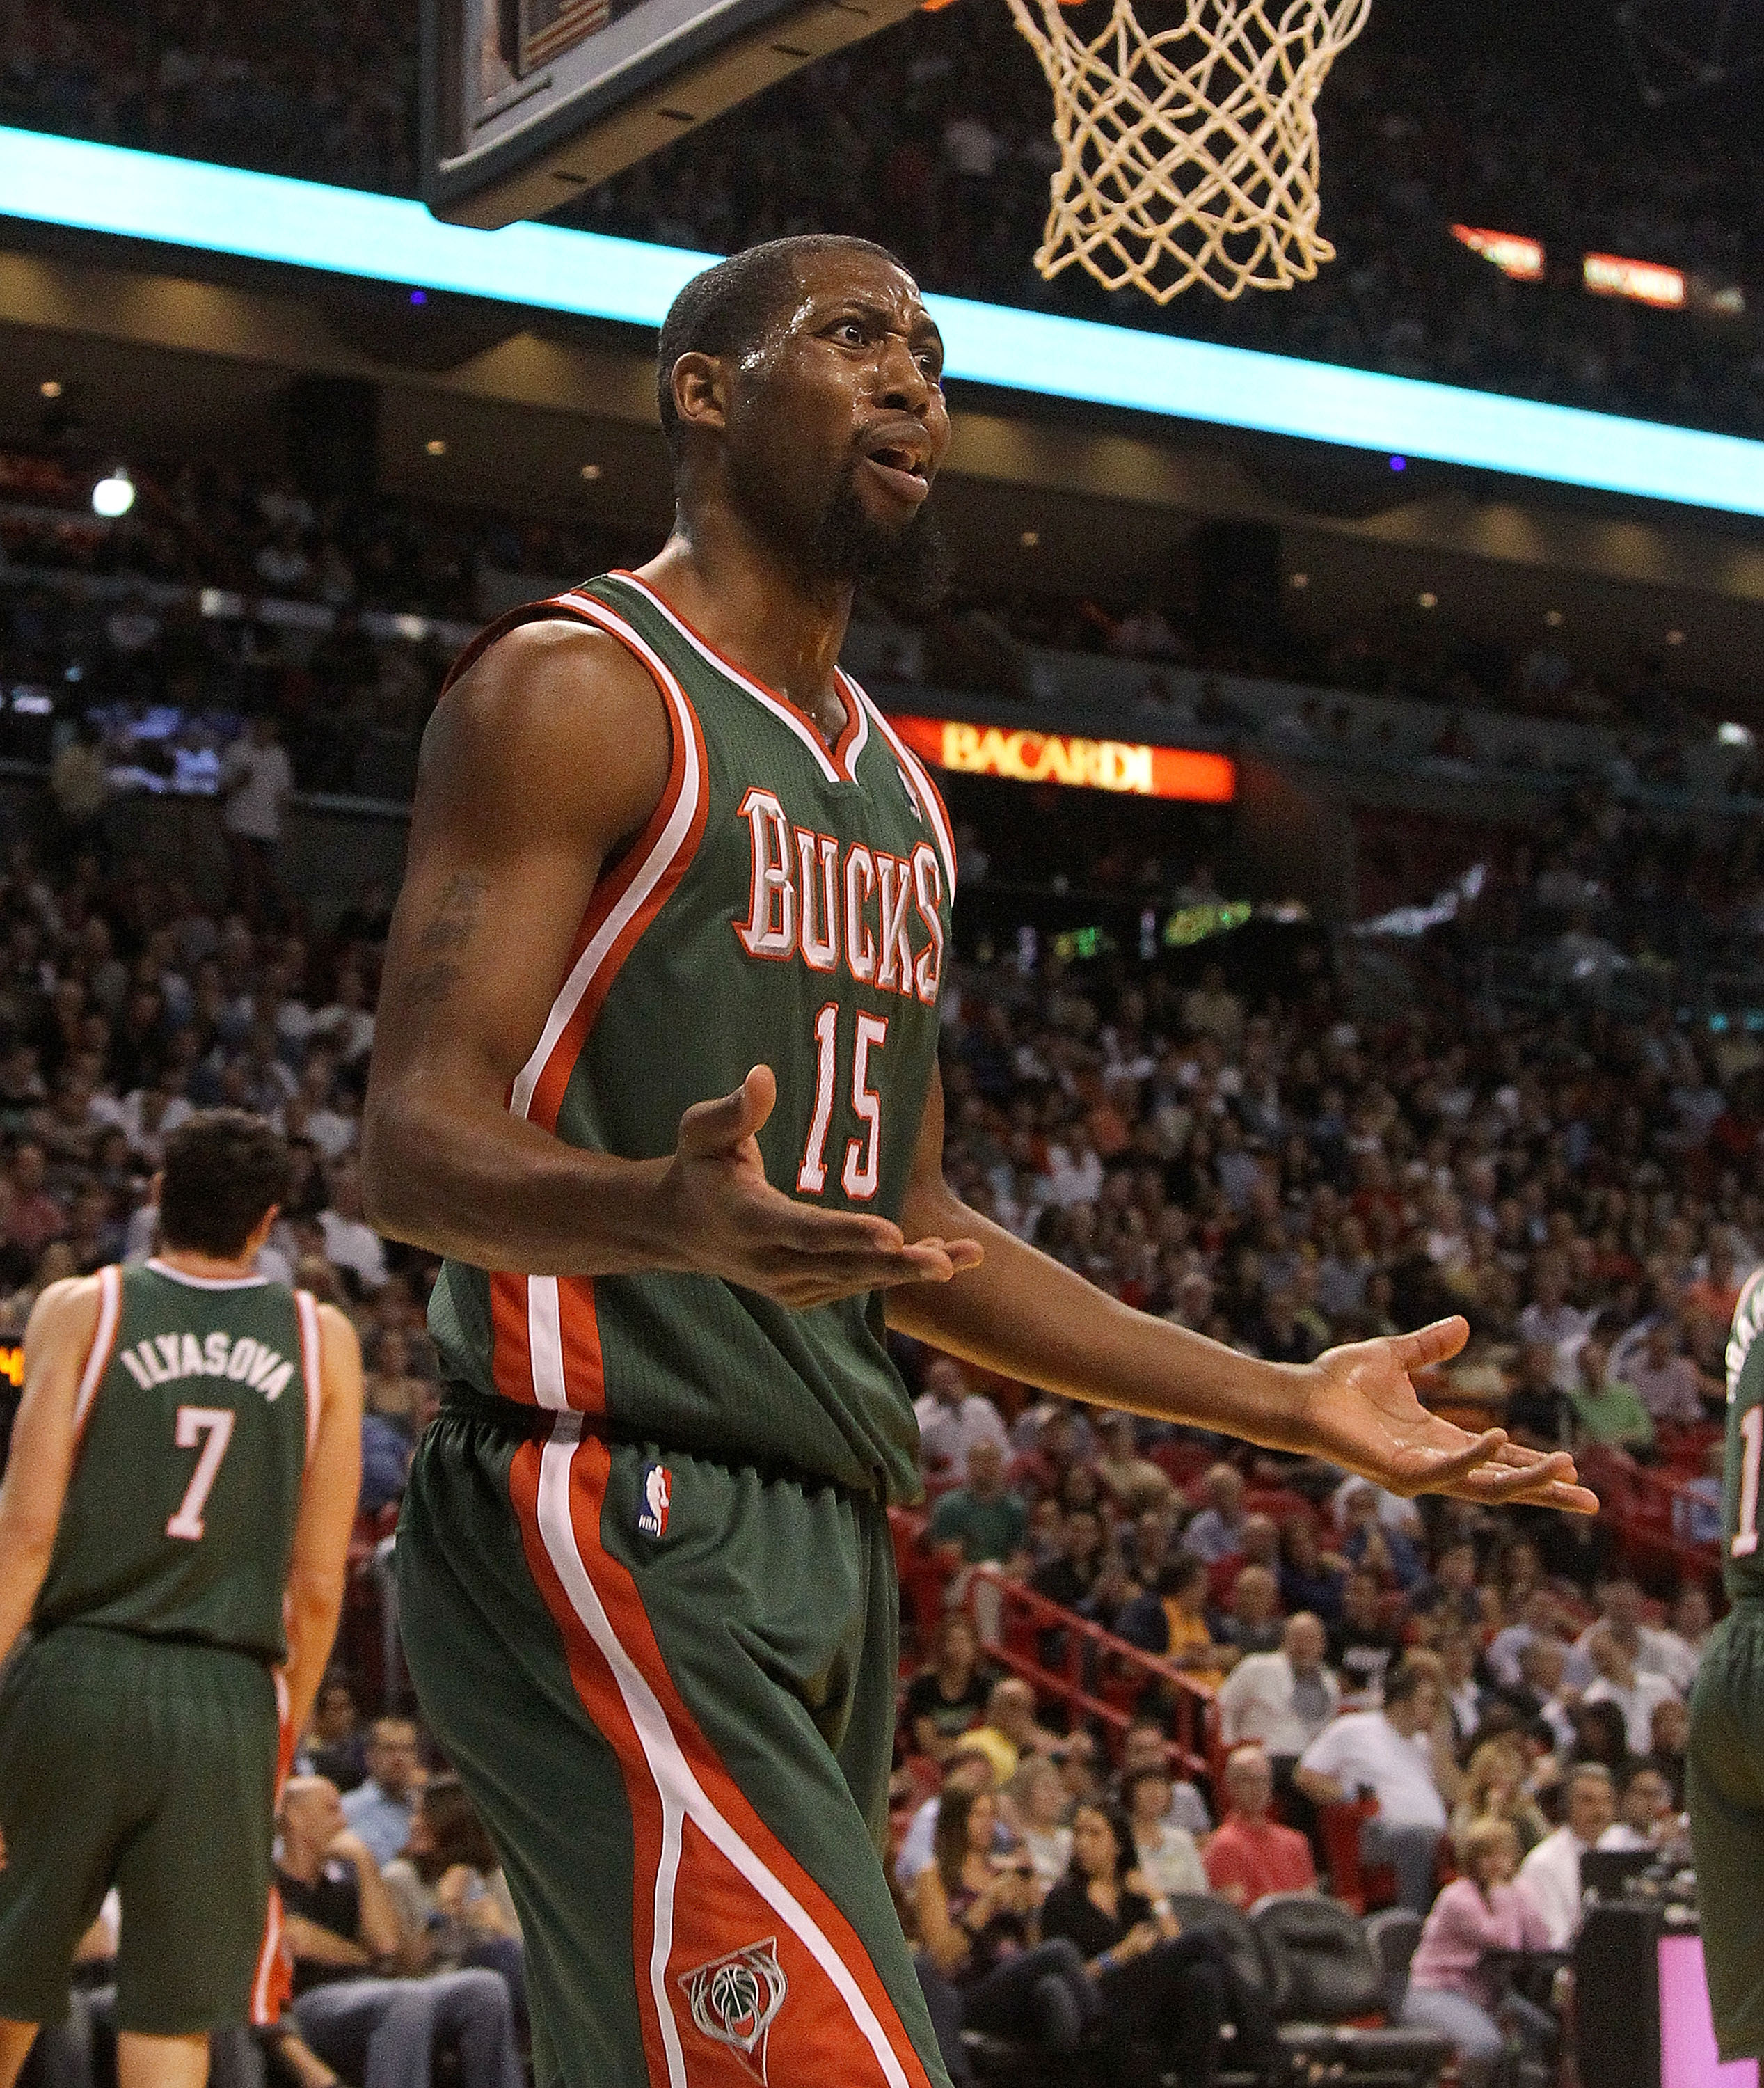 MIAMI, FL - JANUARY 04: John Salmons #15 of the Milwaukee Bucks argues with the officials during a game against the Miami Heat at American Airlines Arena on January 4, 2011 in Miami, Florida. NOTE TO USER: User expressly acknowledges and agrees that, by d